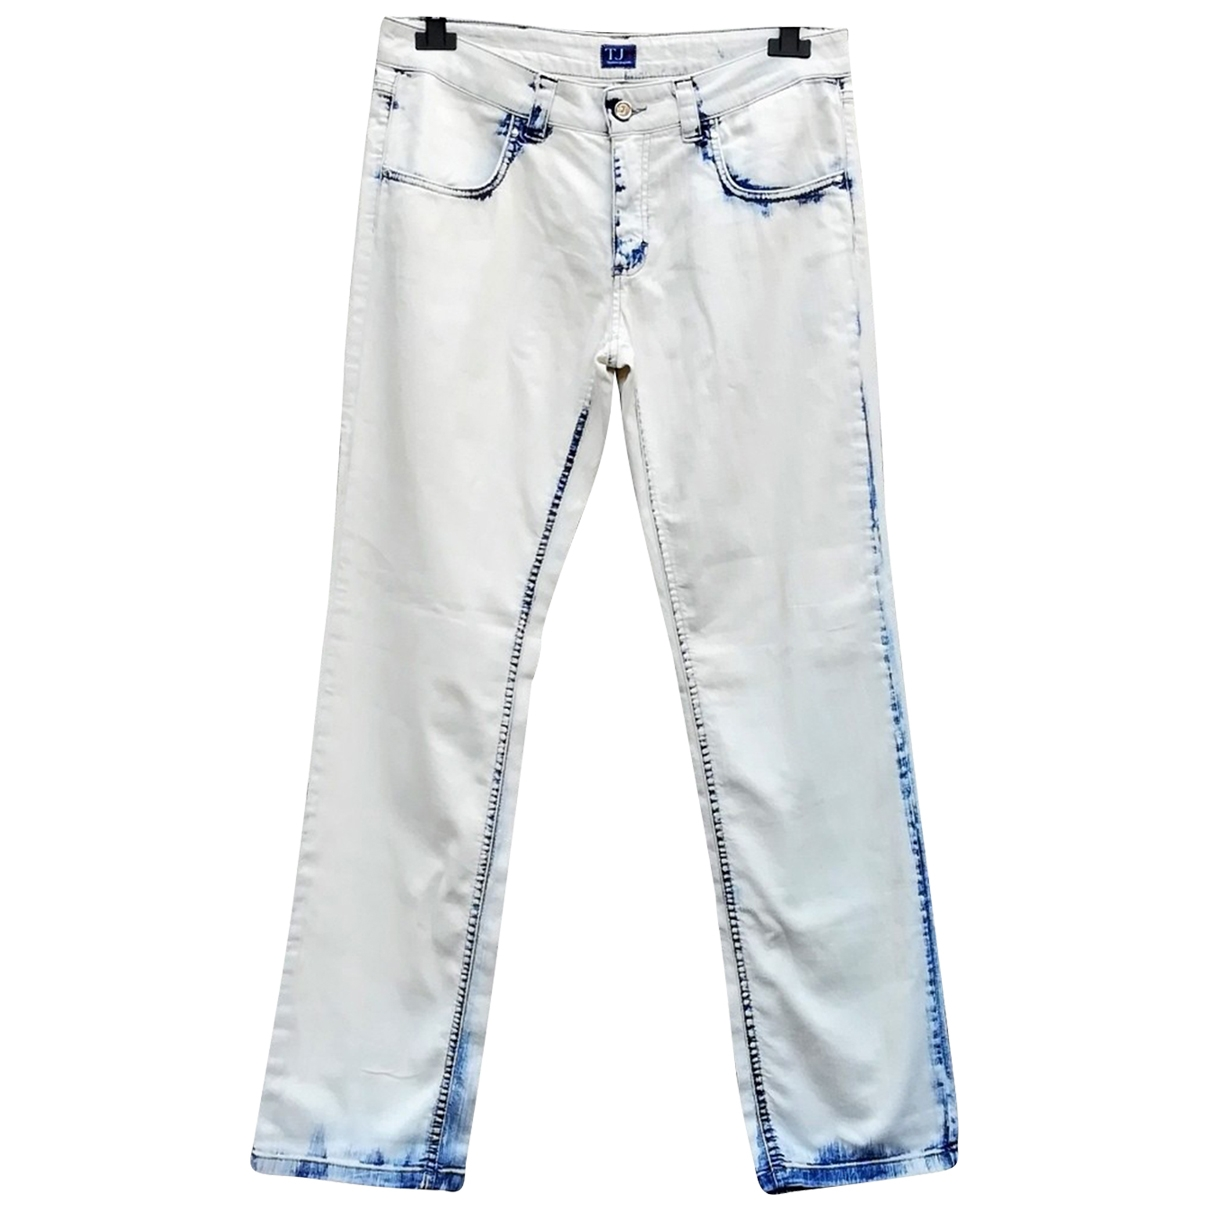 Trussardi Jeans \N White Cotton Jeans for Women 30 US